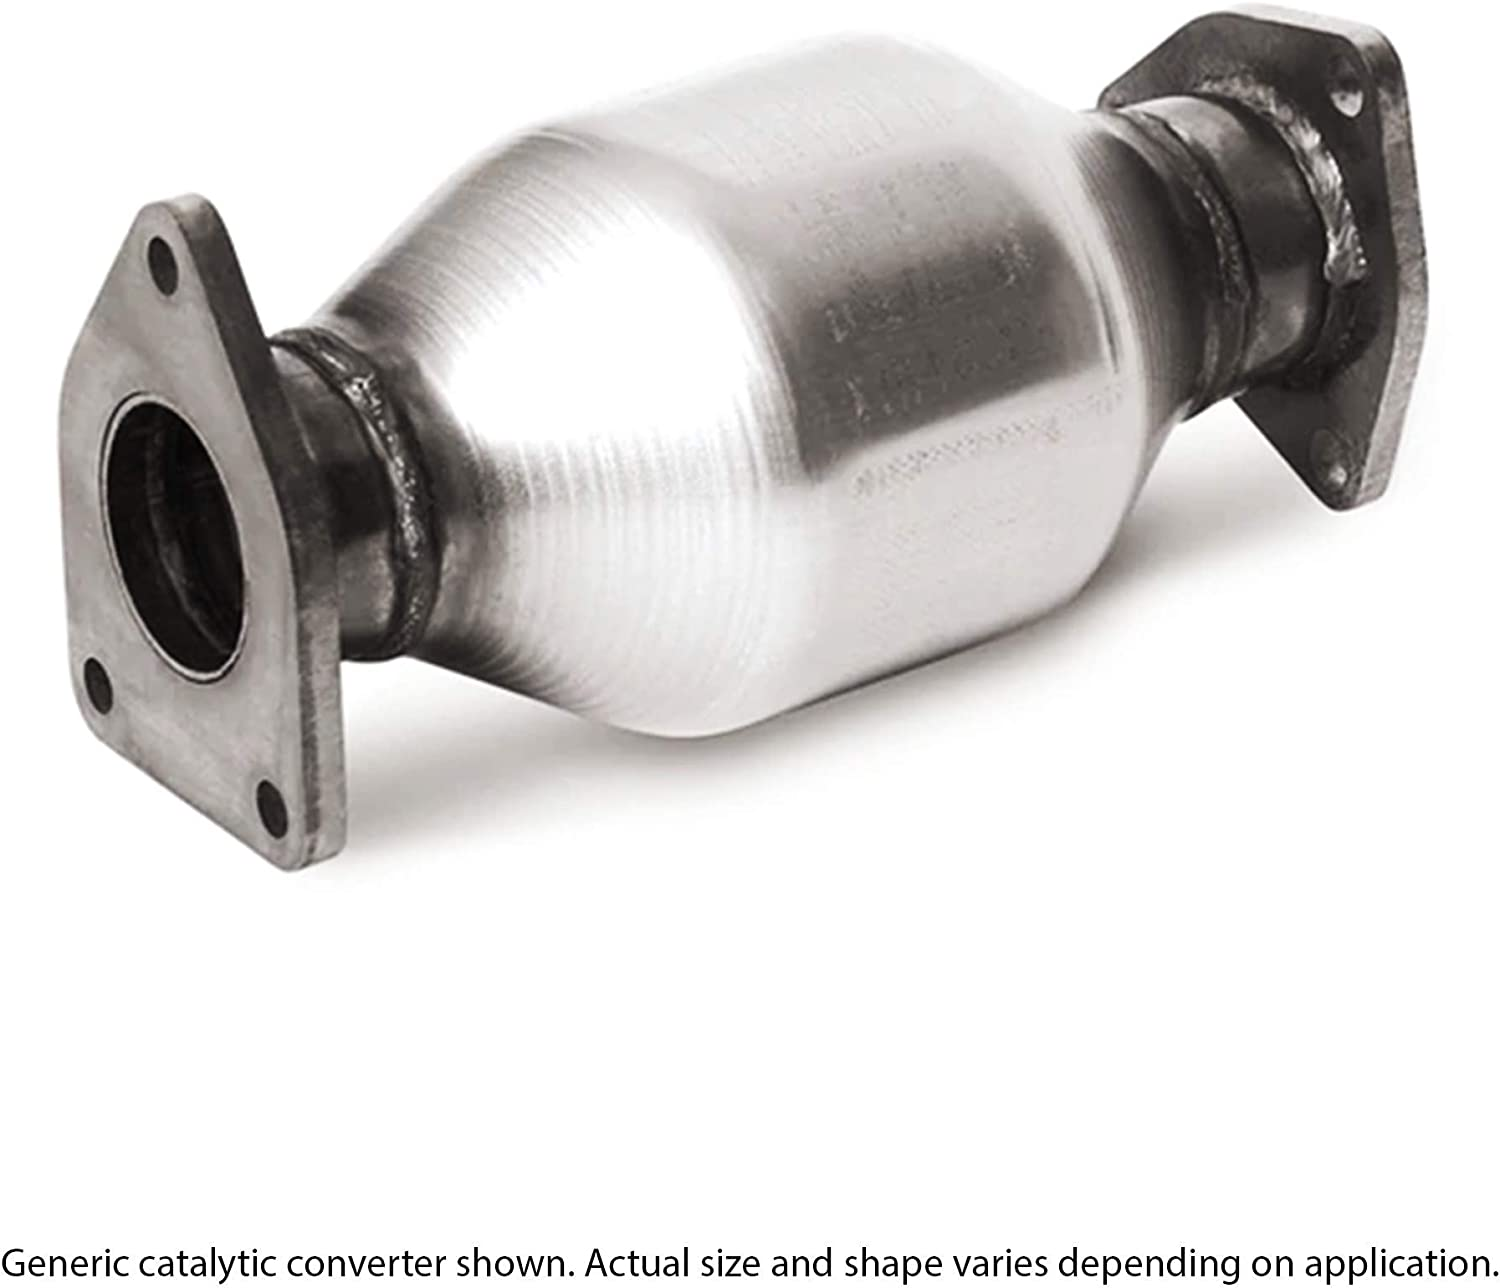 PAE Direct-Fit Catalytic Converter for 2011-2016 Chrysler Town /& Country 3.6L Driver Side